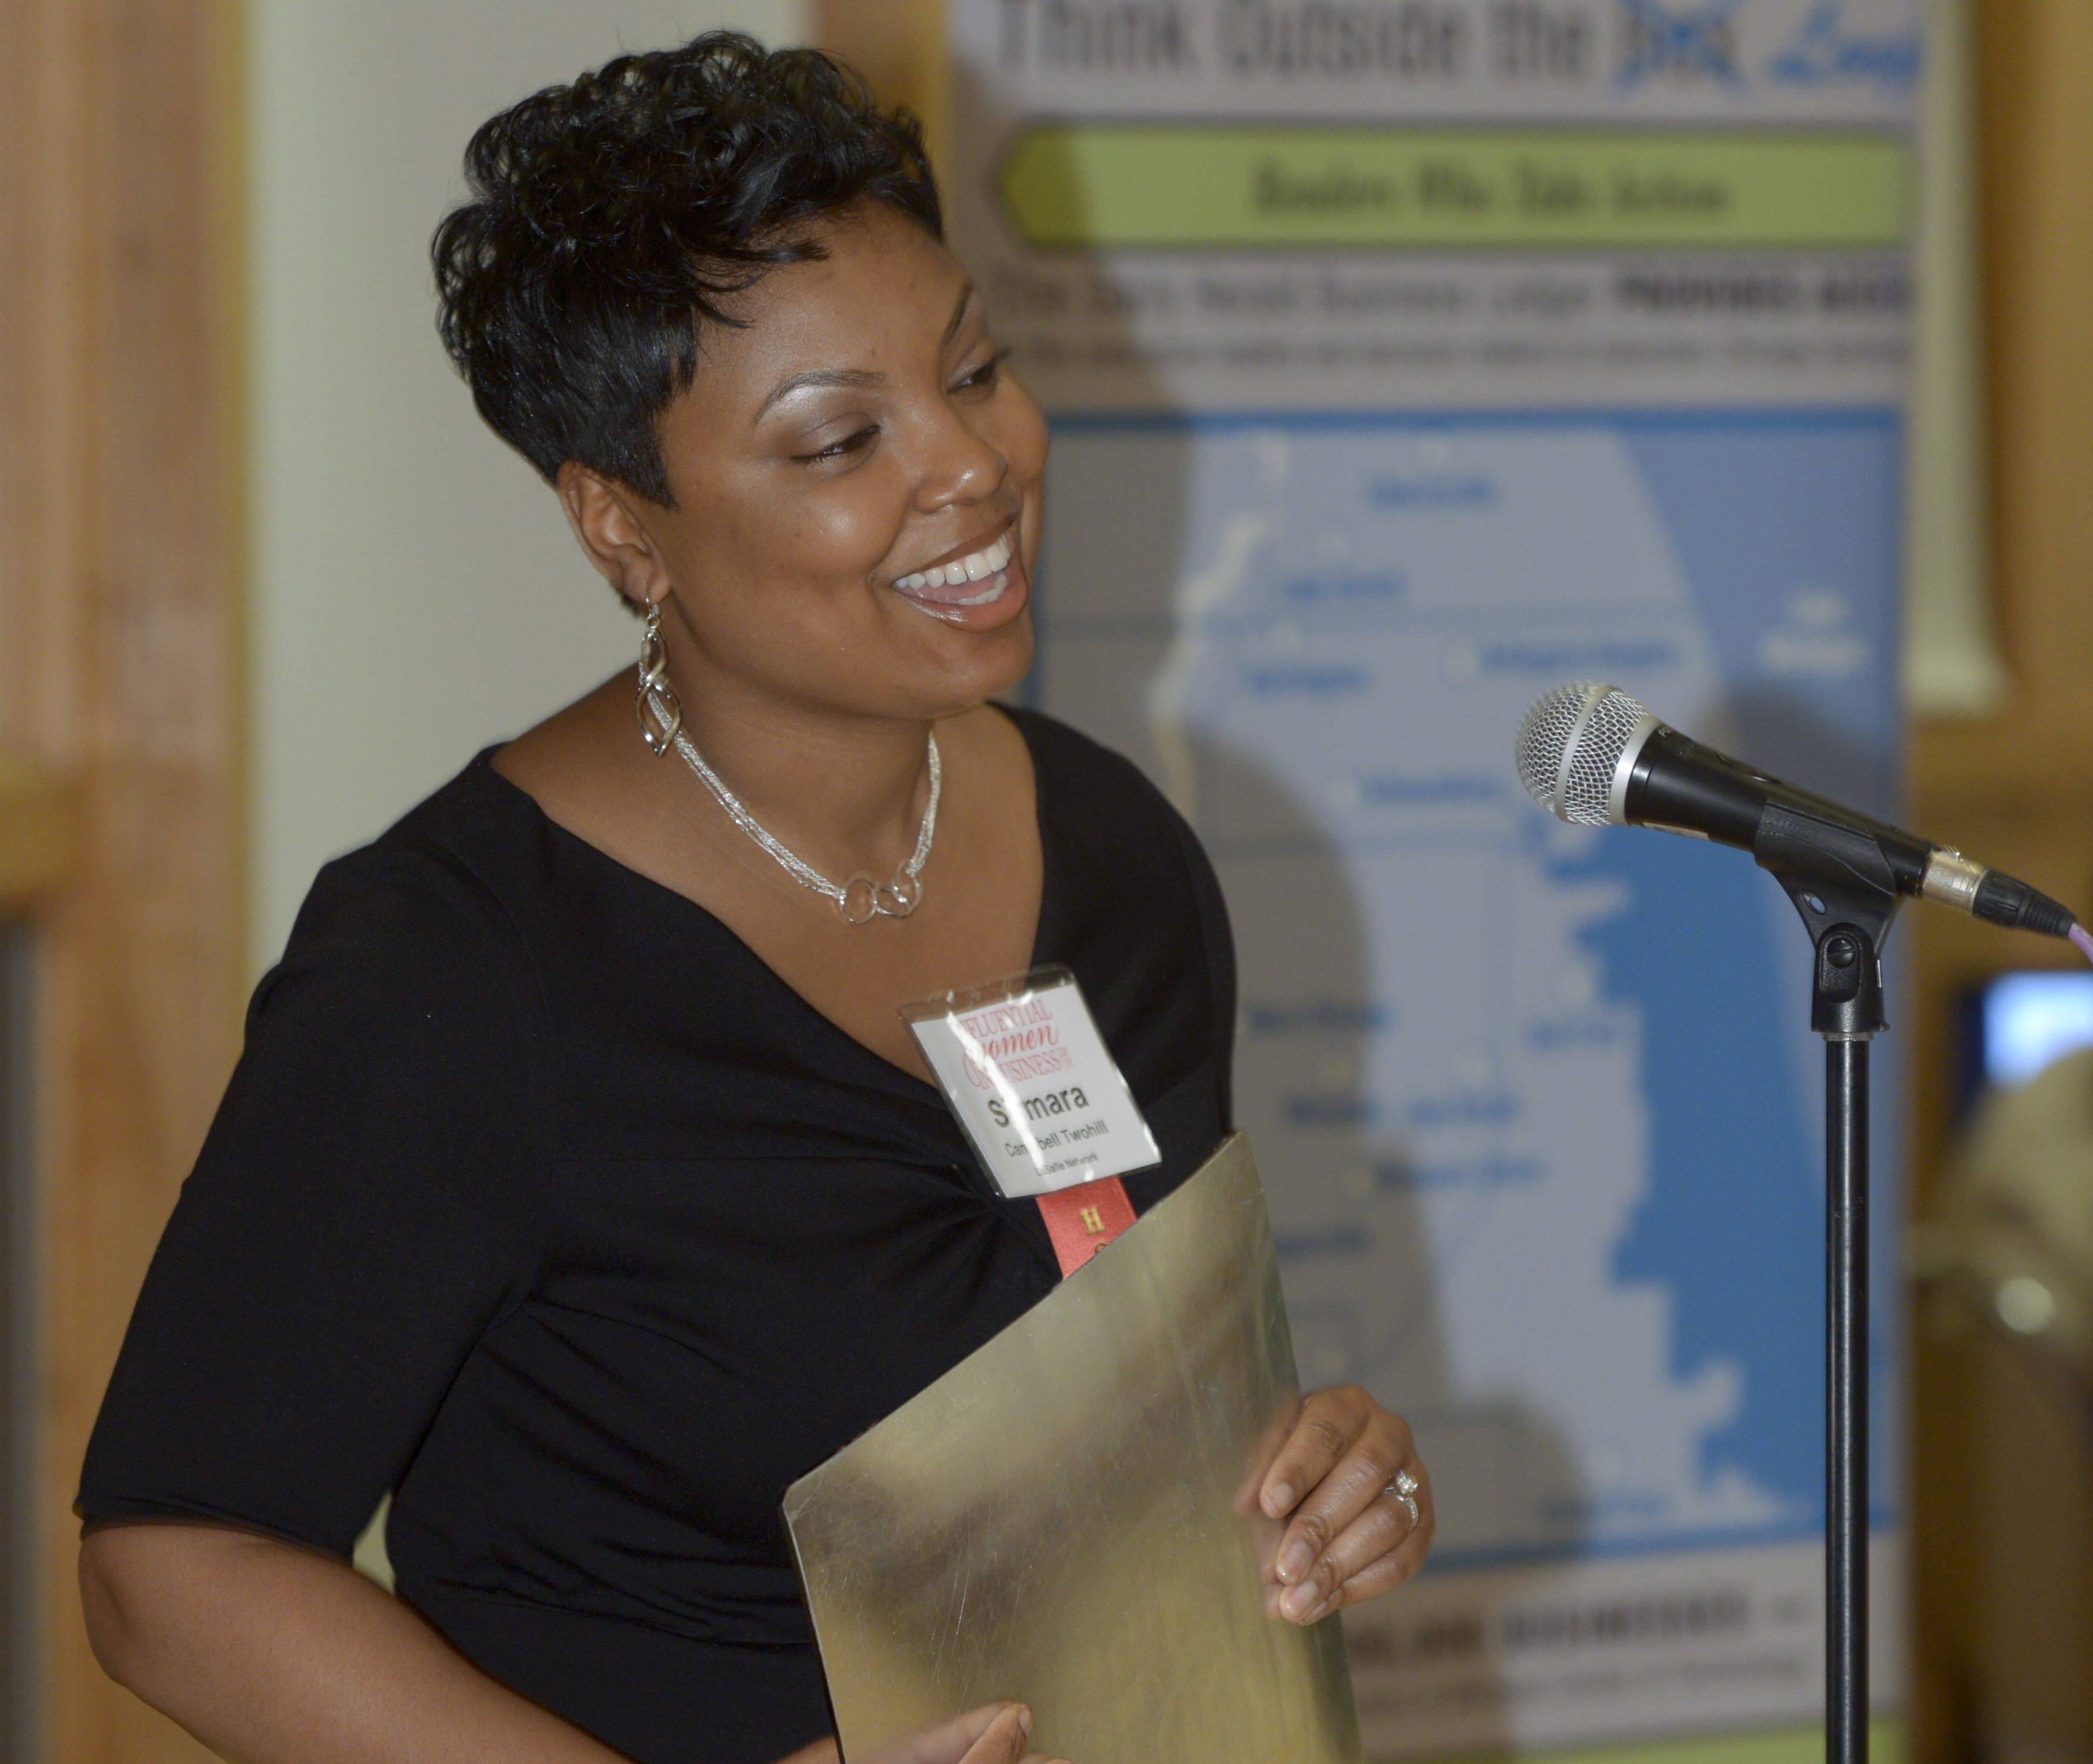 Simara Campbell Twohill, Chief Human Resources Officer for Lasalle Network in Oak Brook accepts her Daily Herald Business Ledger Influential Women in Business award during a ceremony at Danada House in Wheaton, Thursday.